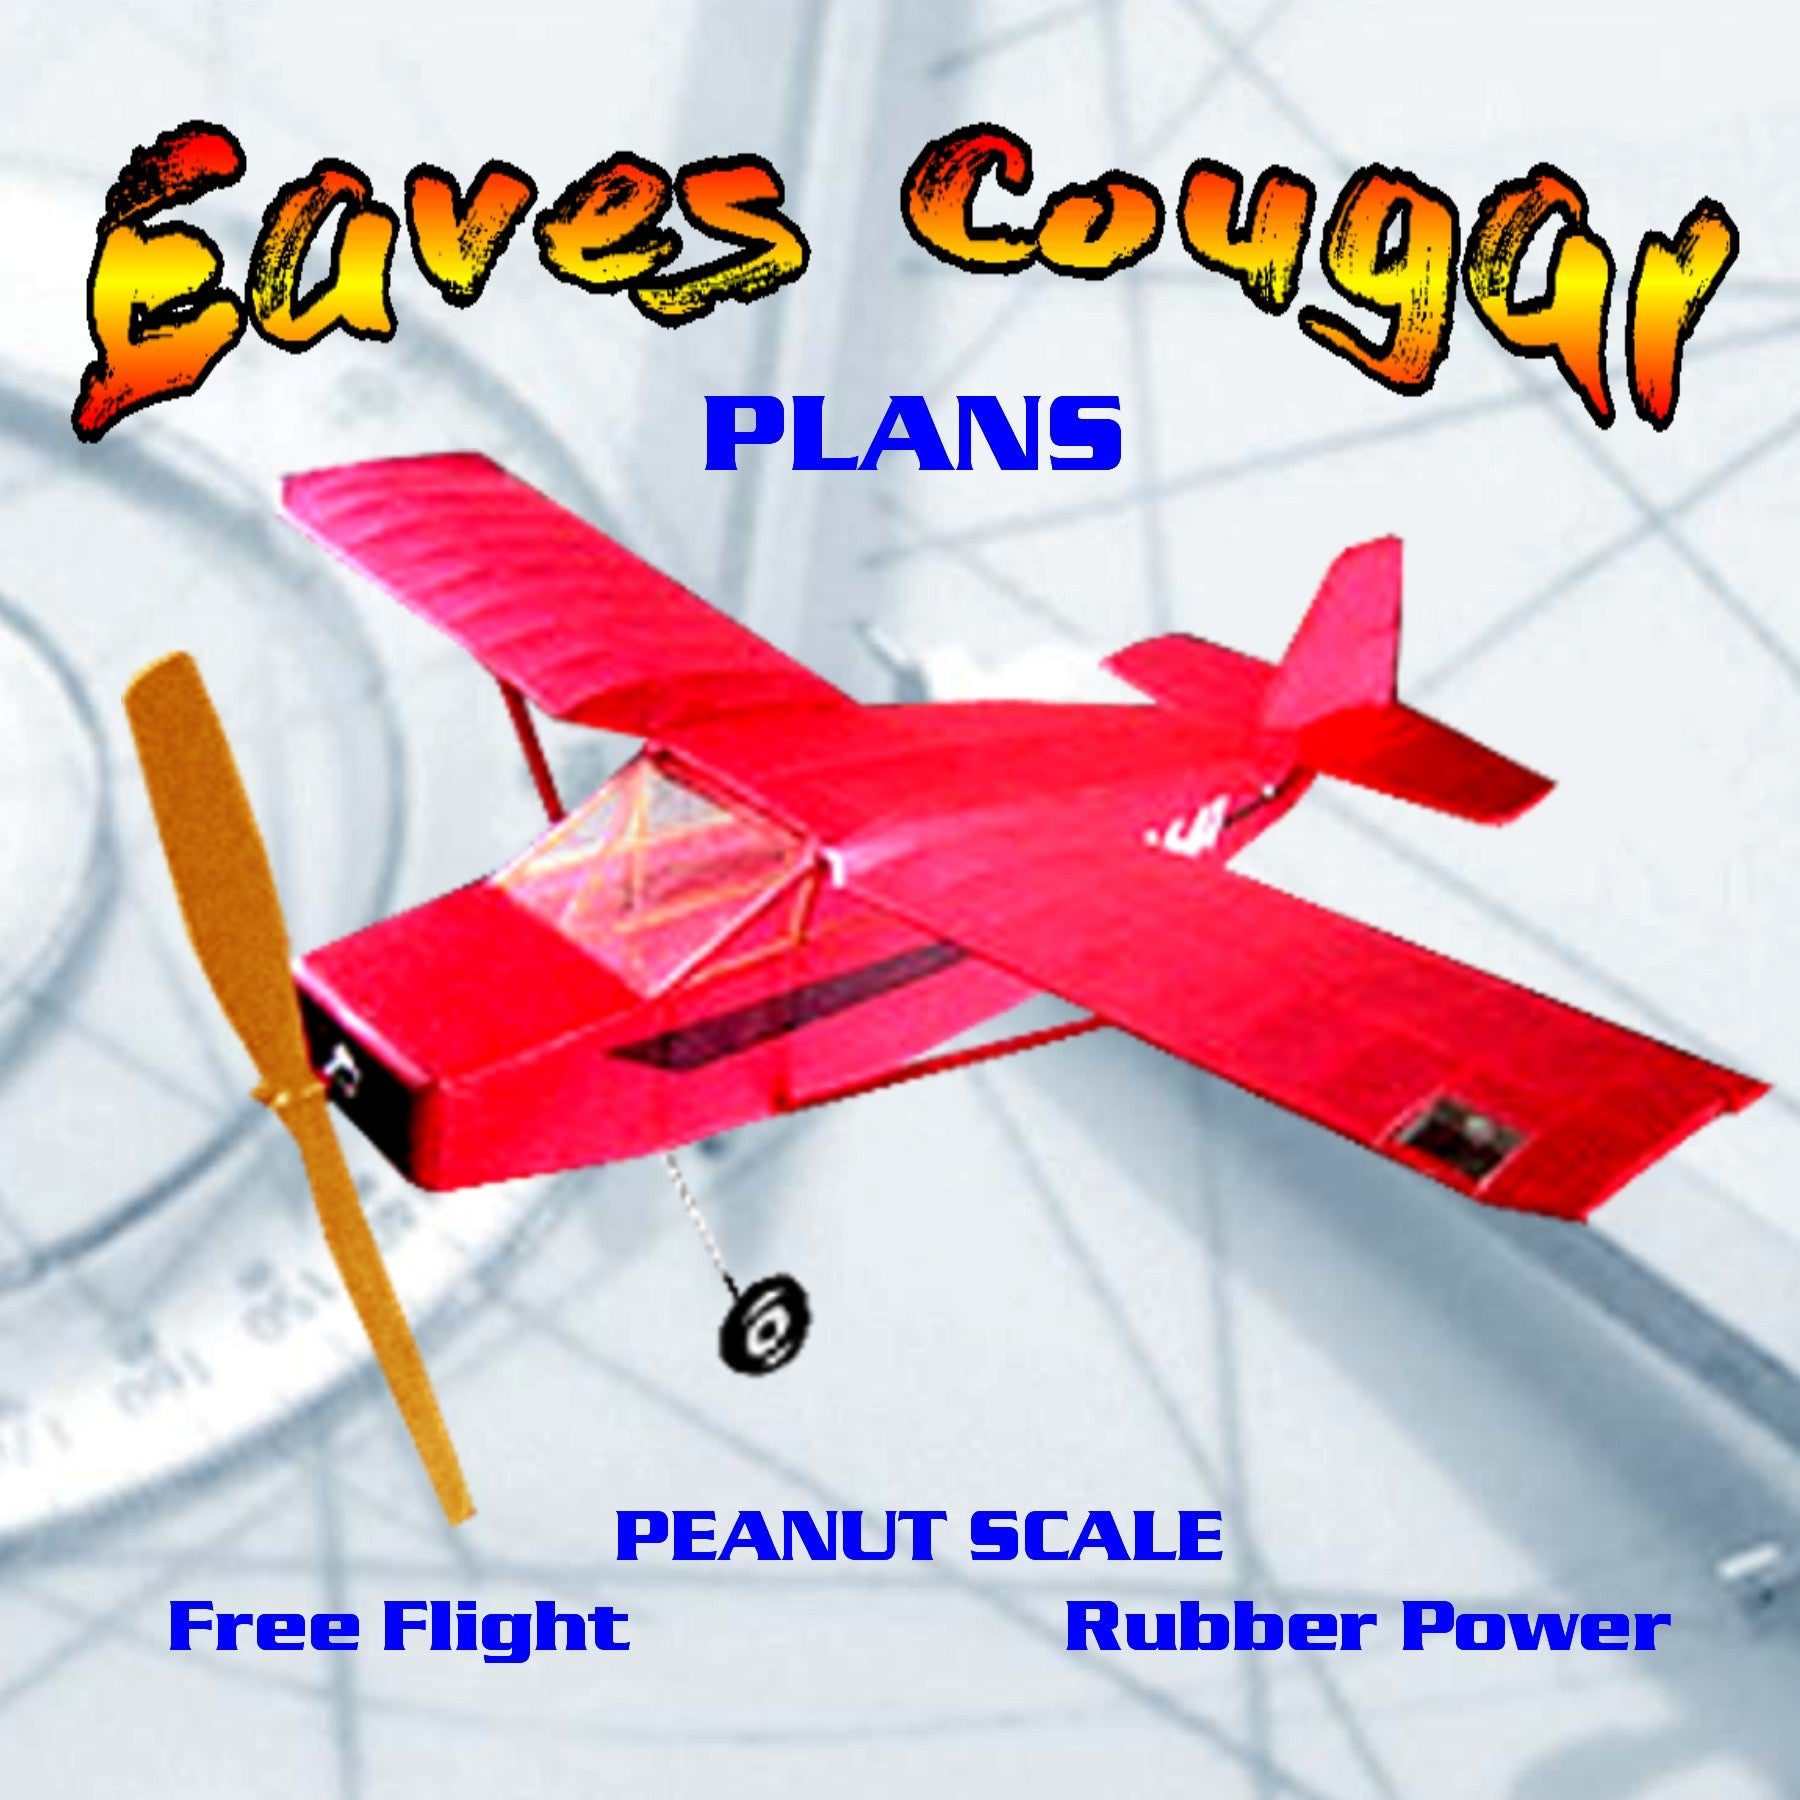 Full Size Printed Peanut Scale Plans Eaves Cougar won a trophy at the AMA Nats